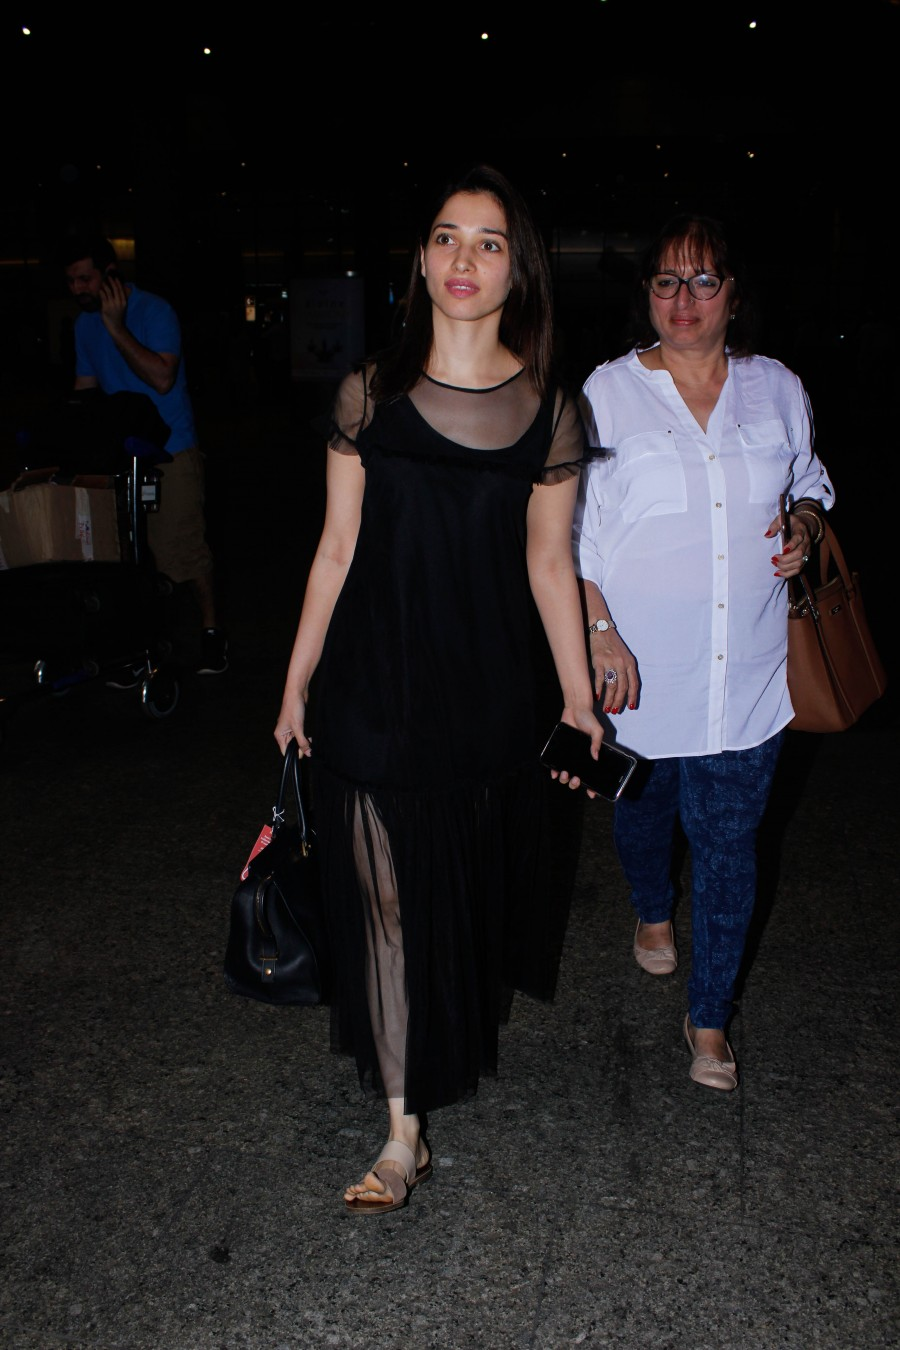 Tamannaah Bhatia,Tamannaah,actress Tamannaah Bhatia,Tamannaah spotted at Mumbai airport,Tamannaah at Mumbai airport,Tamannaah new pics,Tamannaah new images,Tamannaah new photos,Tamannaah new stills,Tamannaah new pictures